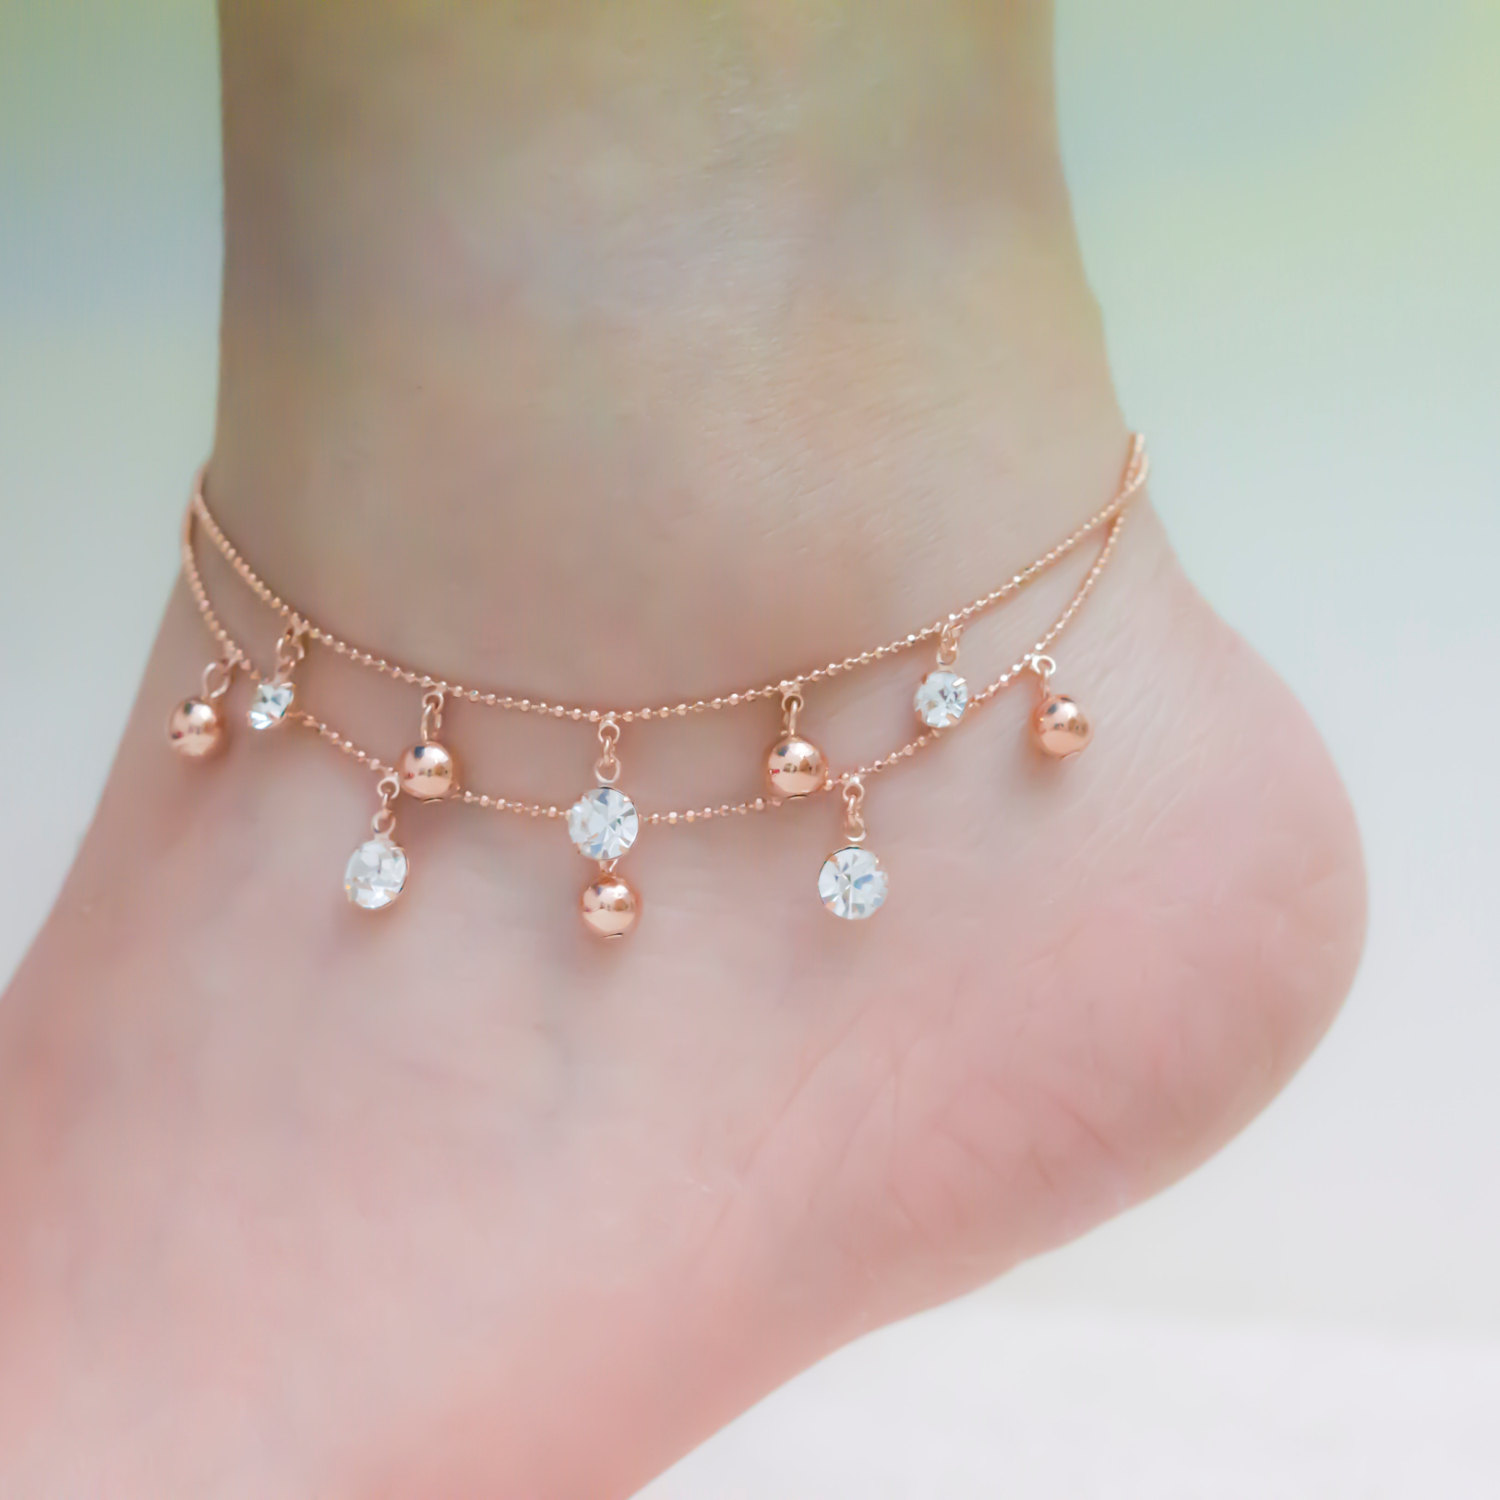 sterling silver a strong sizes flat bracelet gold chain plated anklet cable necklace rose all